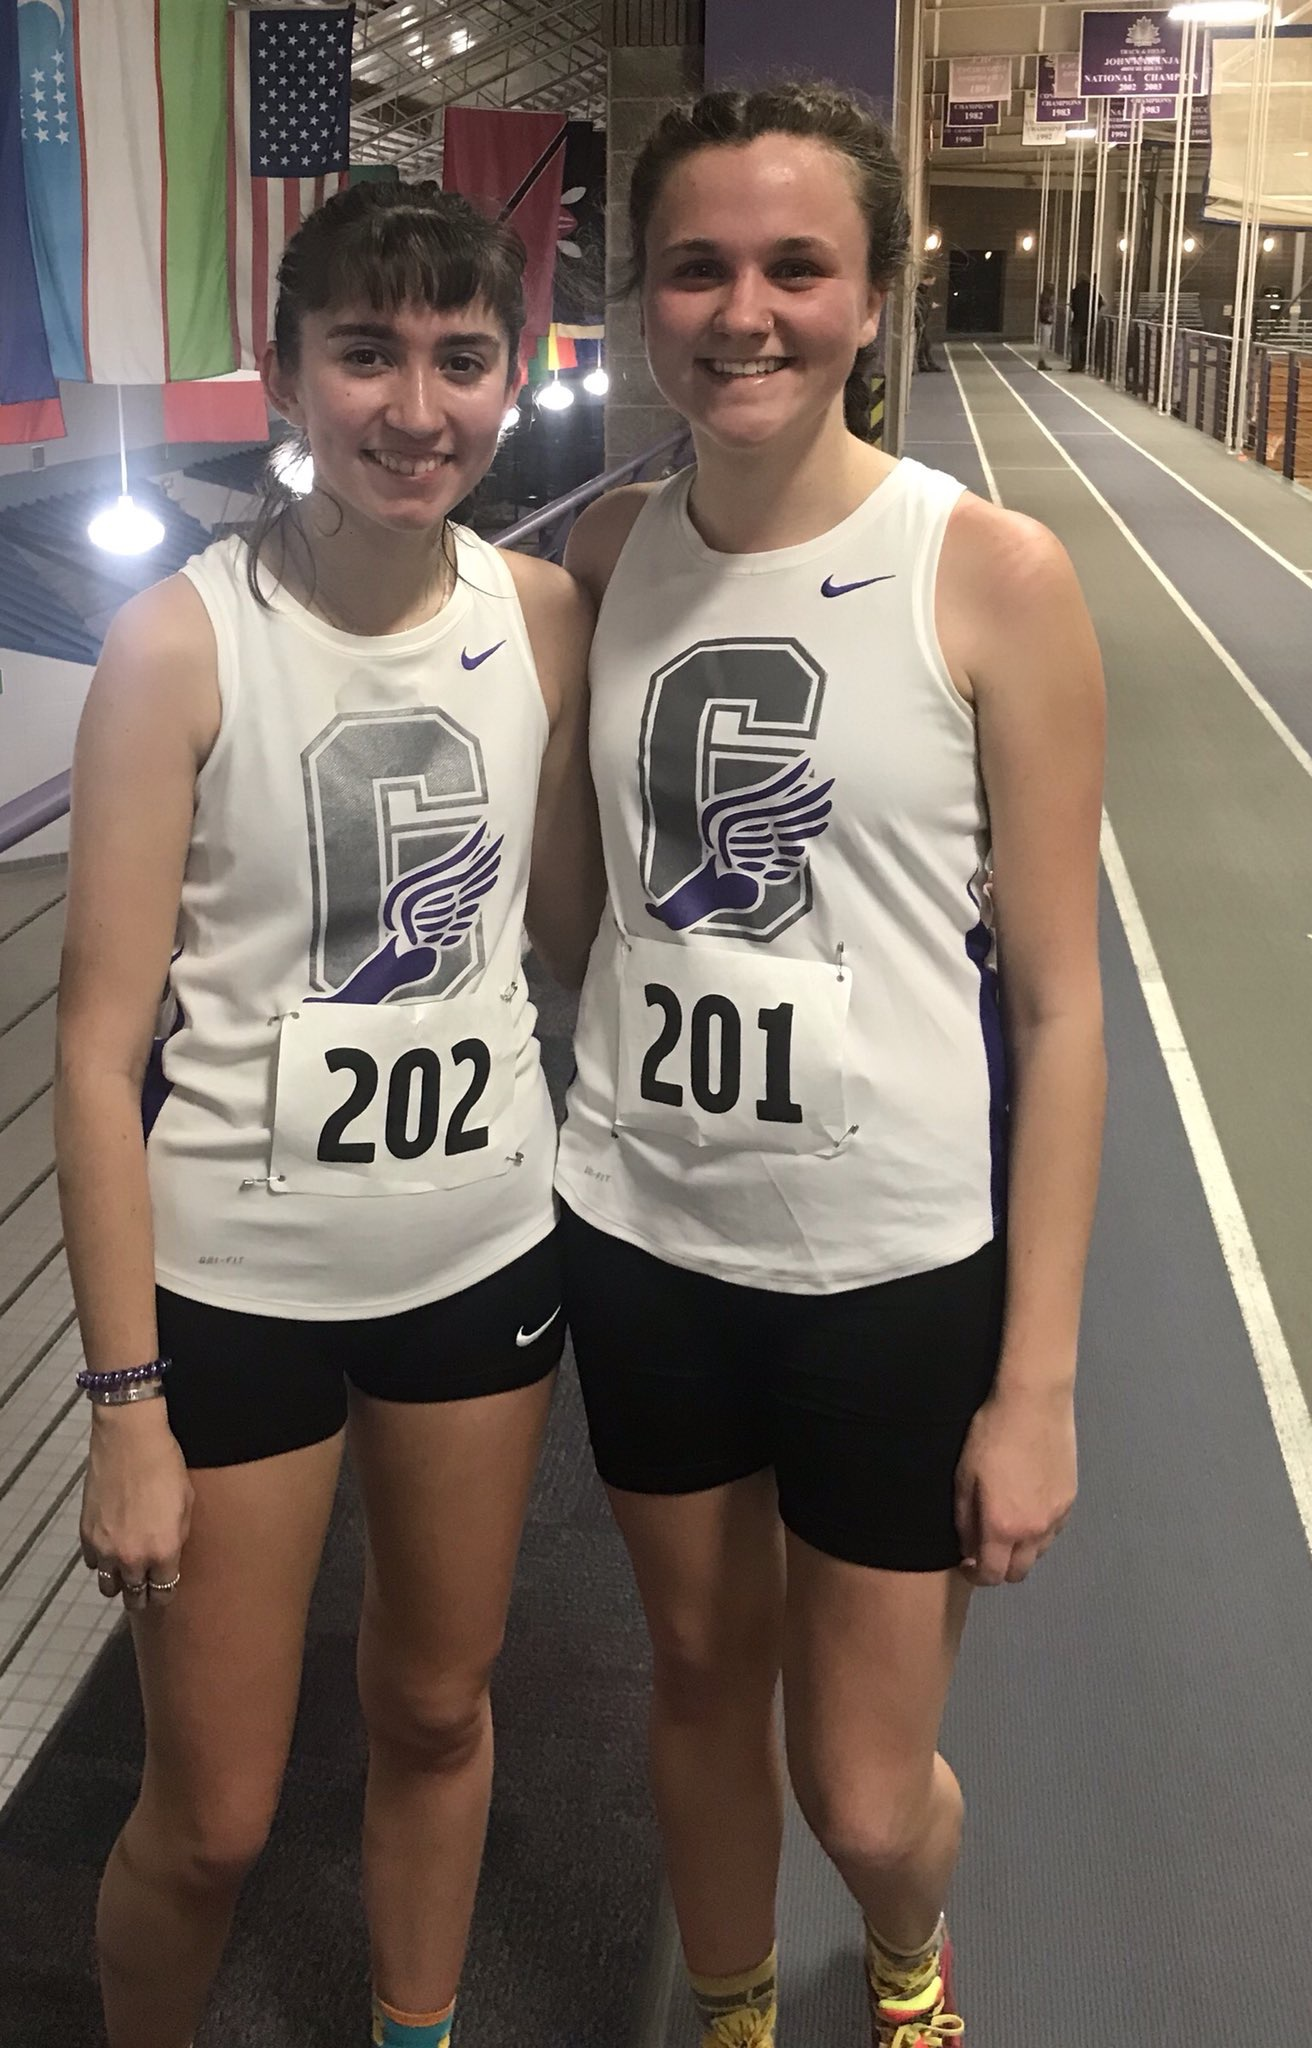 Hayley Bickford and Siana Emery pose for a picture on the RFC indoor track